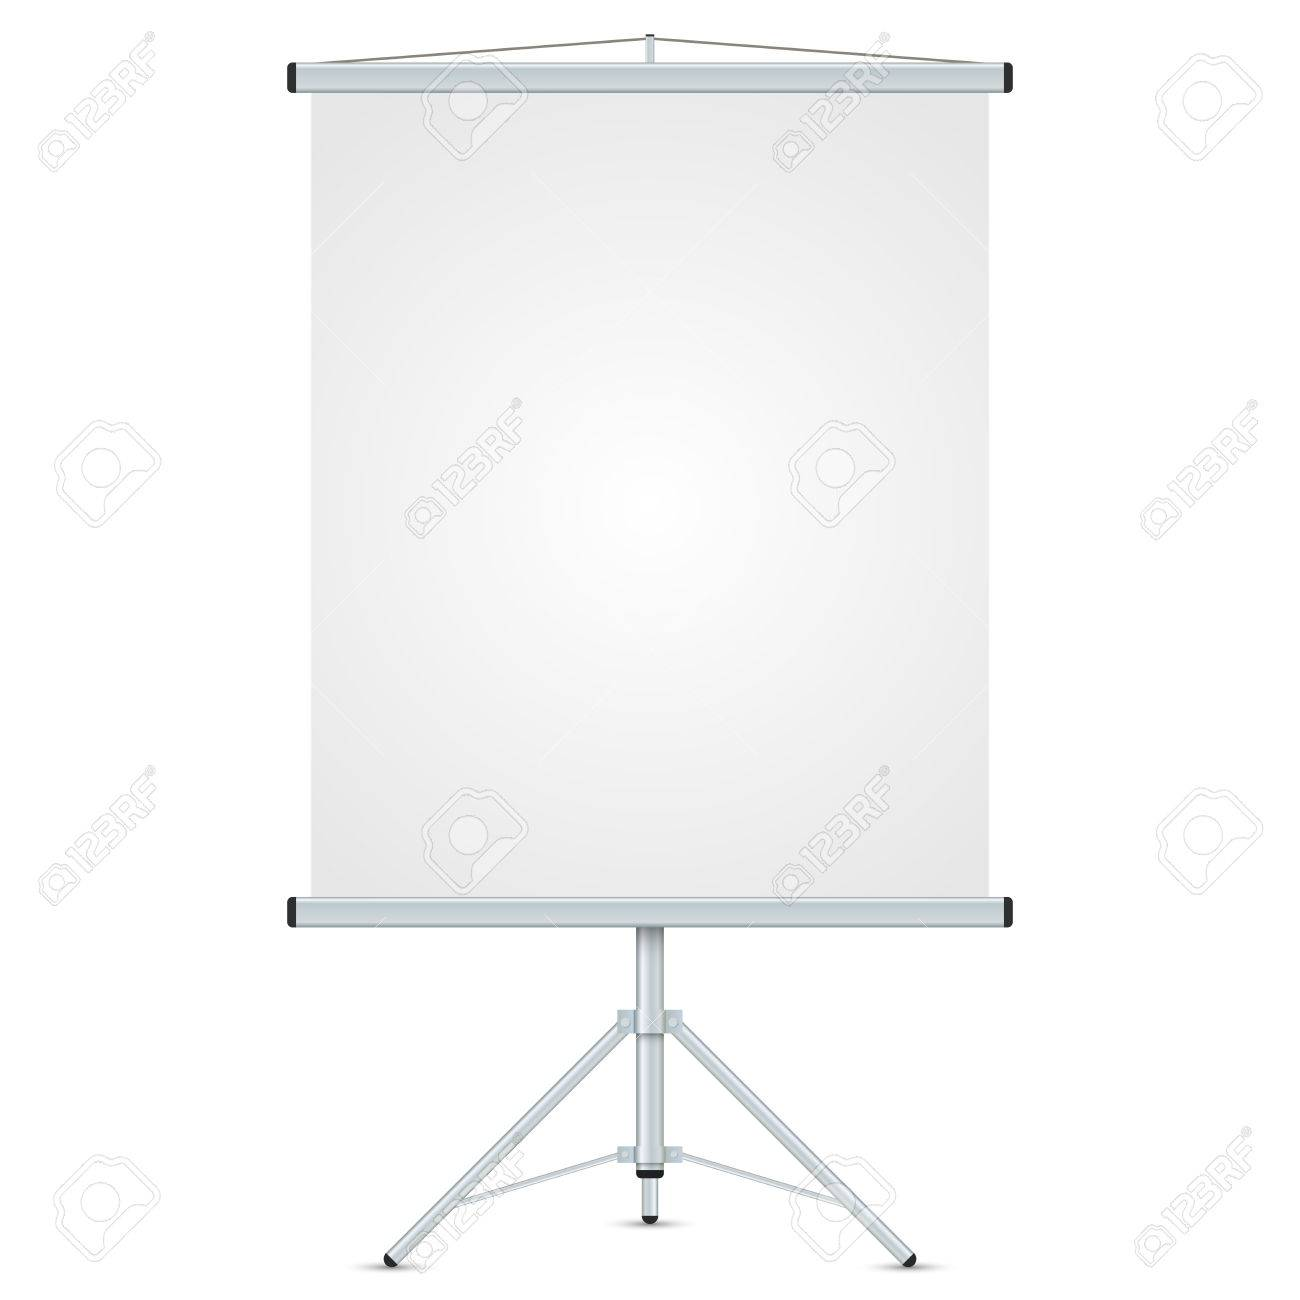 Whiteboard template whiteboard doodles a powerpoint template from office blank whiteboard vector template isolated on white toneelgroepblik Choice Image